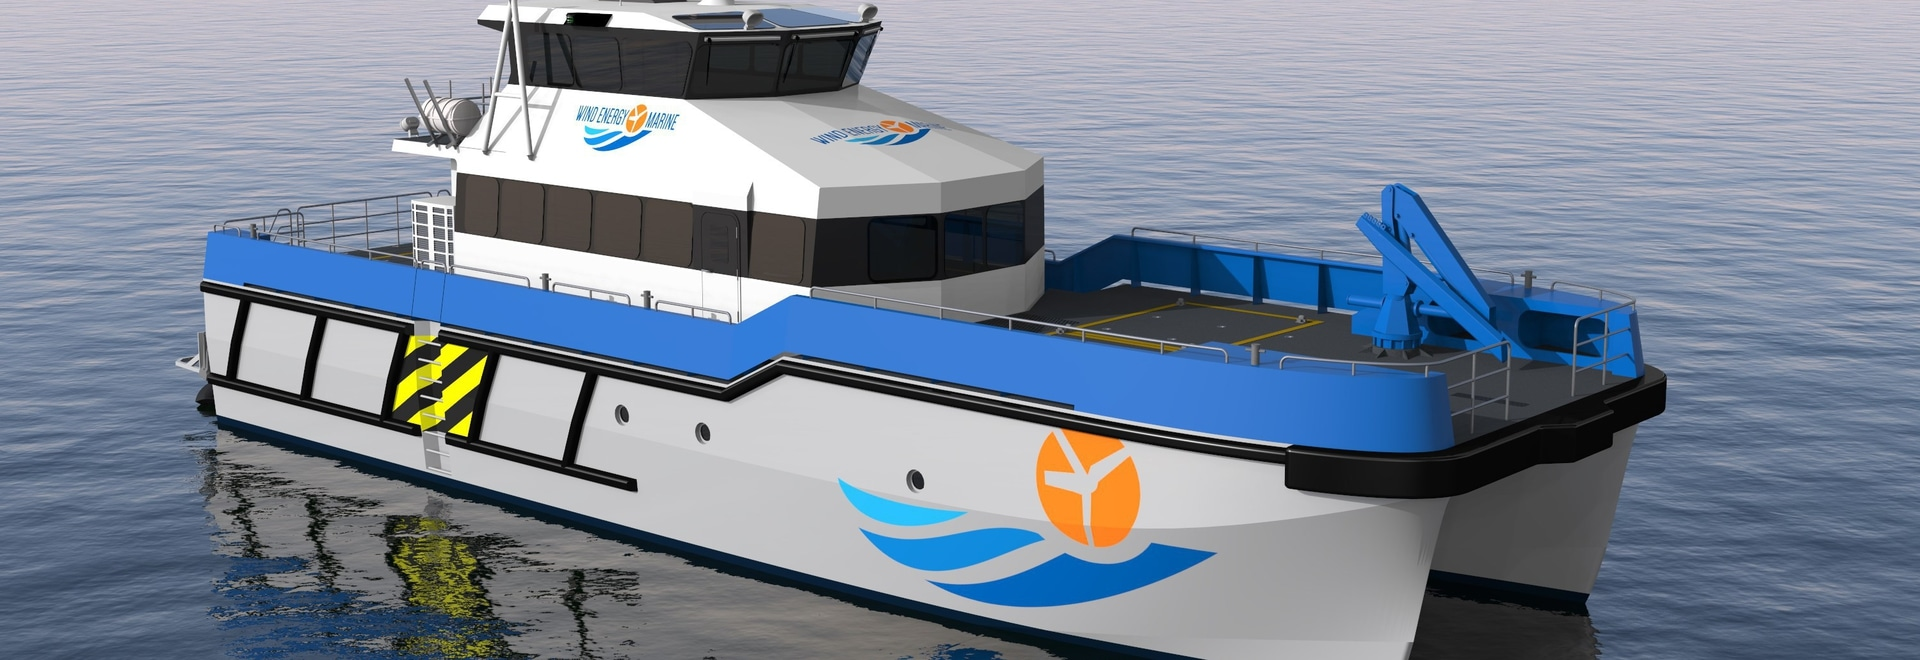 PIRIOU secures an order for two wind farm support vessels for WIND ENERGY MARINE